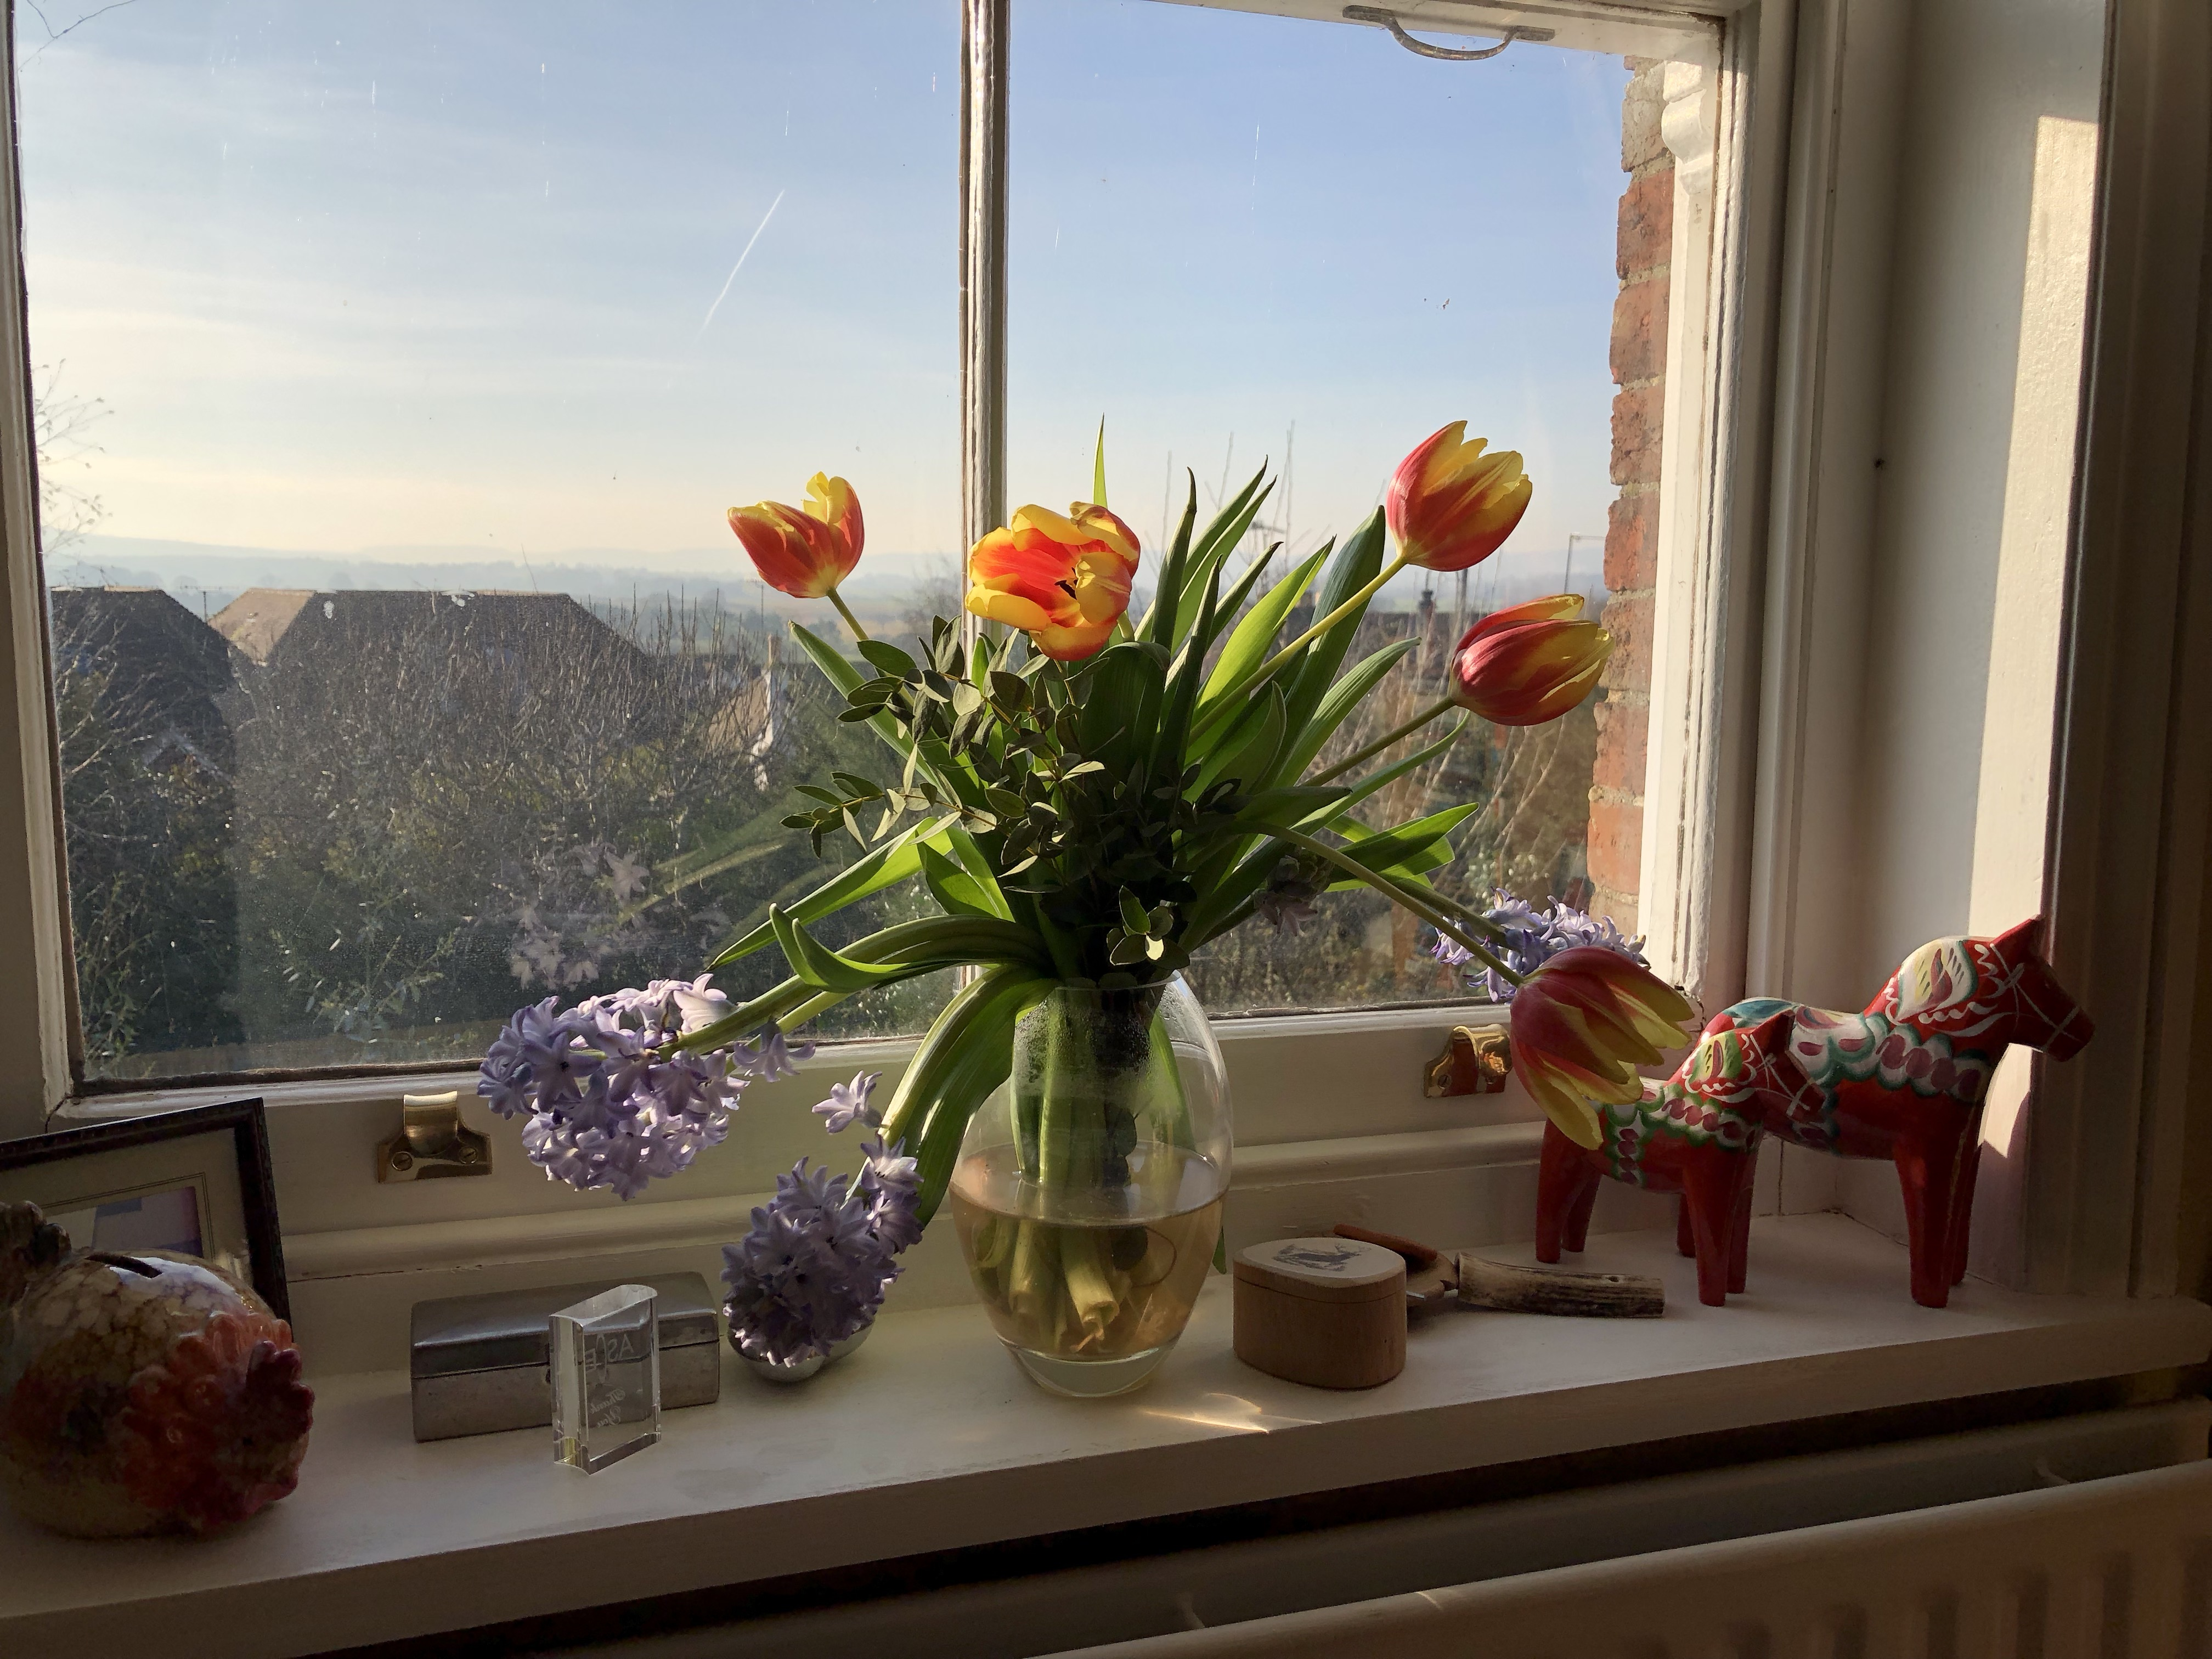 Spring flowers on a winters day